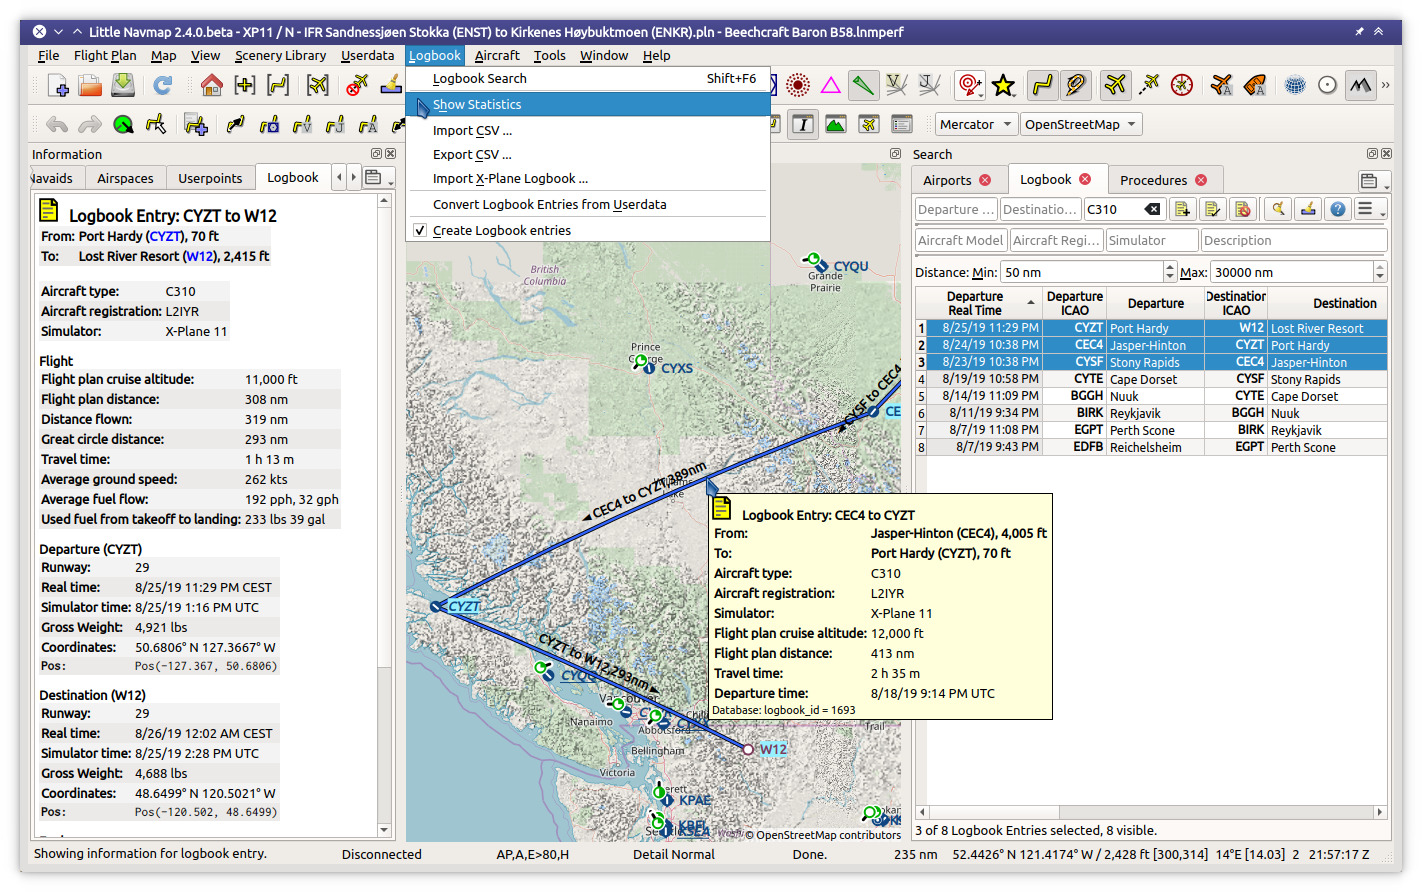 Logbook functionality with three entries selected in search which are highlighted on the map